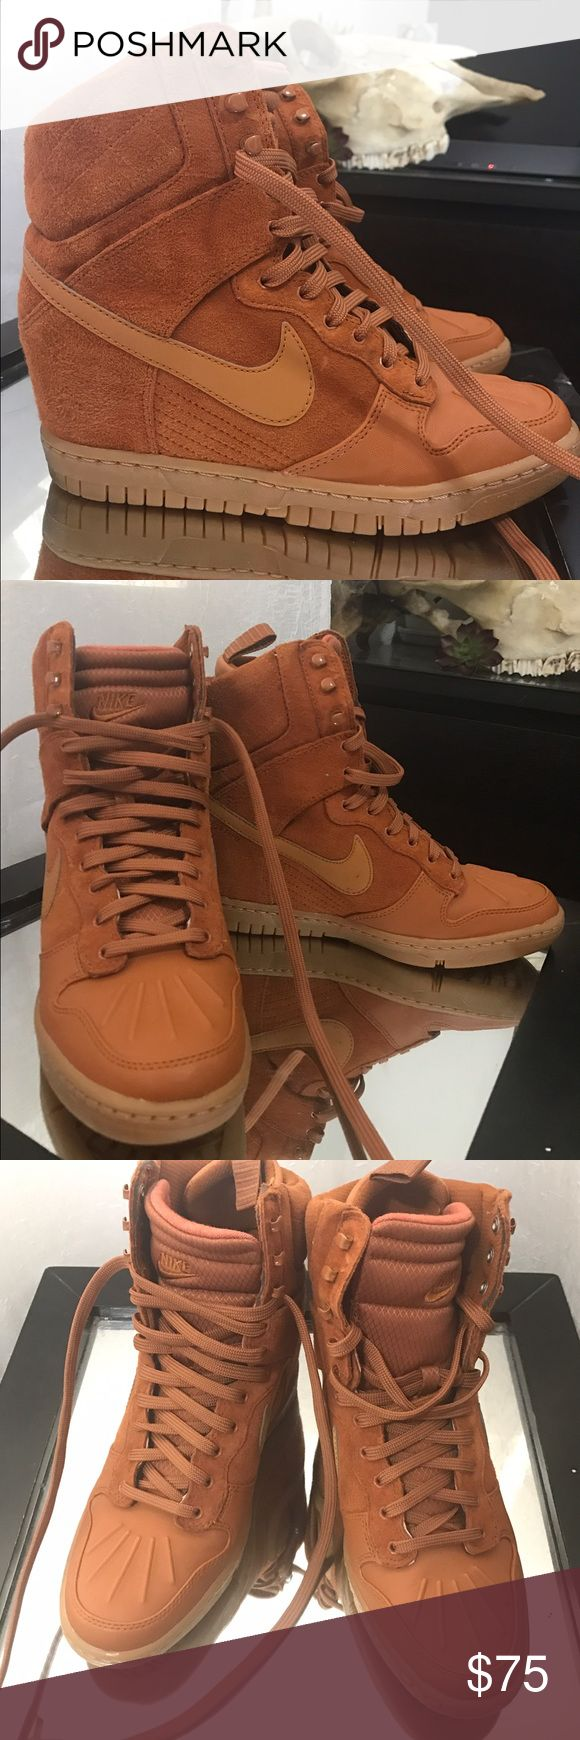 Nike Sky Hi Wedges Suede sky hi wedges with hidden heel inside. Super comfortable, I could run in these if I wanted to.  These are just a little too big for me. Ordered them online and worn once indoors. They are a beautiful cognac color. Size 7.5, like new condition! ACCEPTING OFFERS Nike Shoes